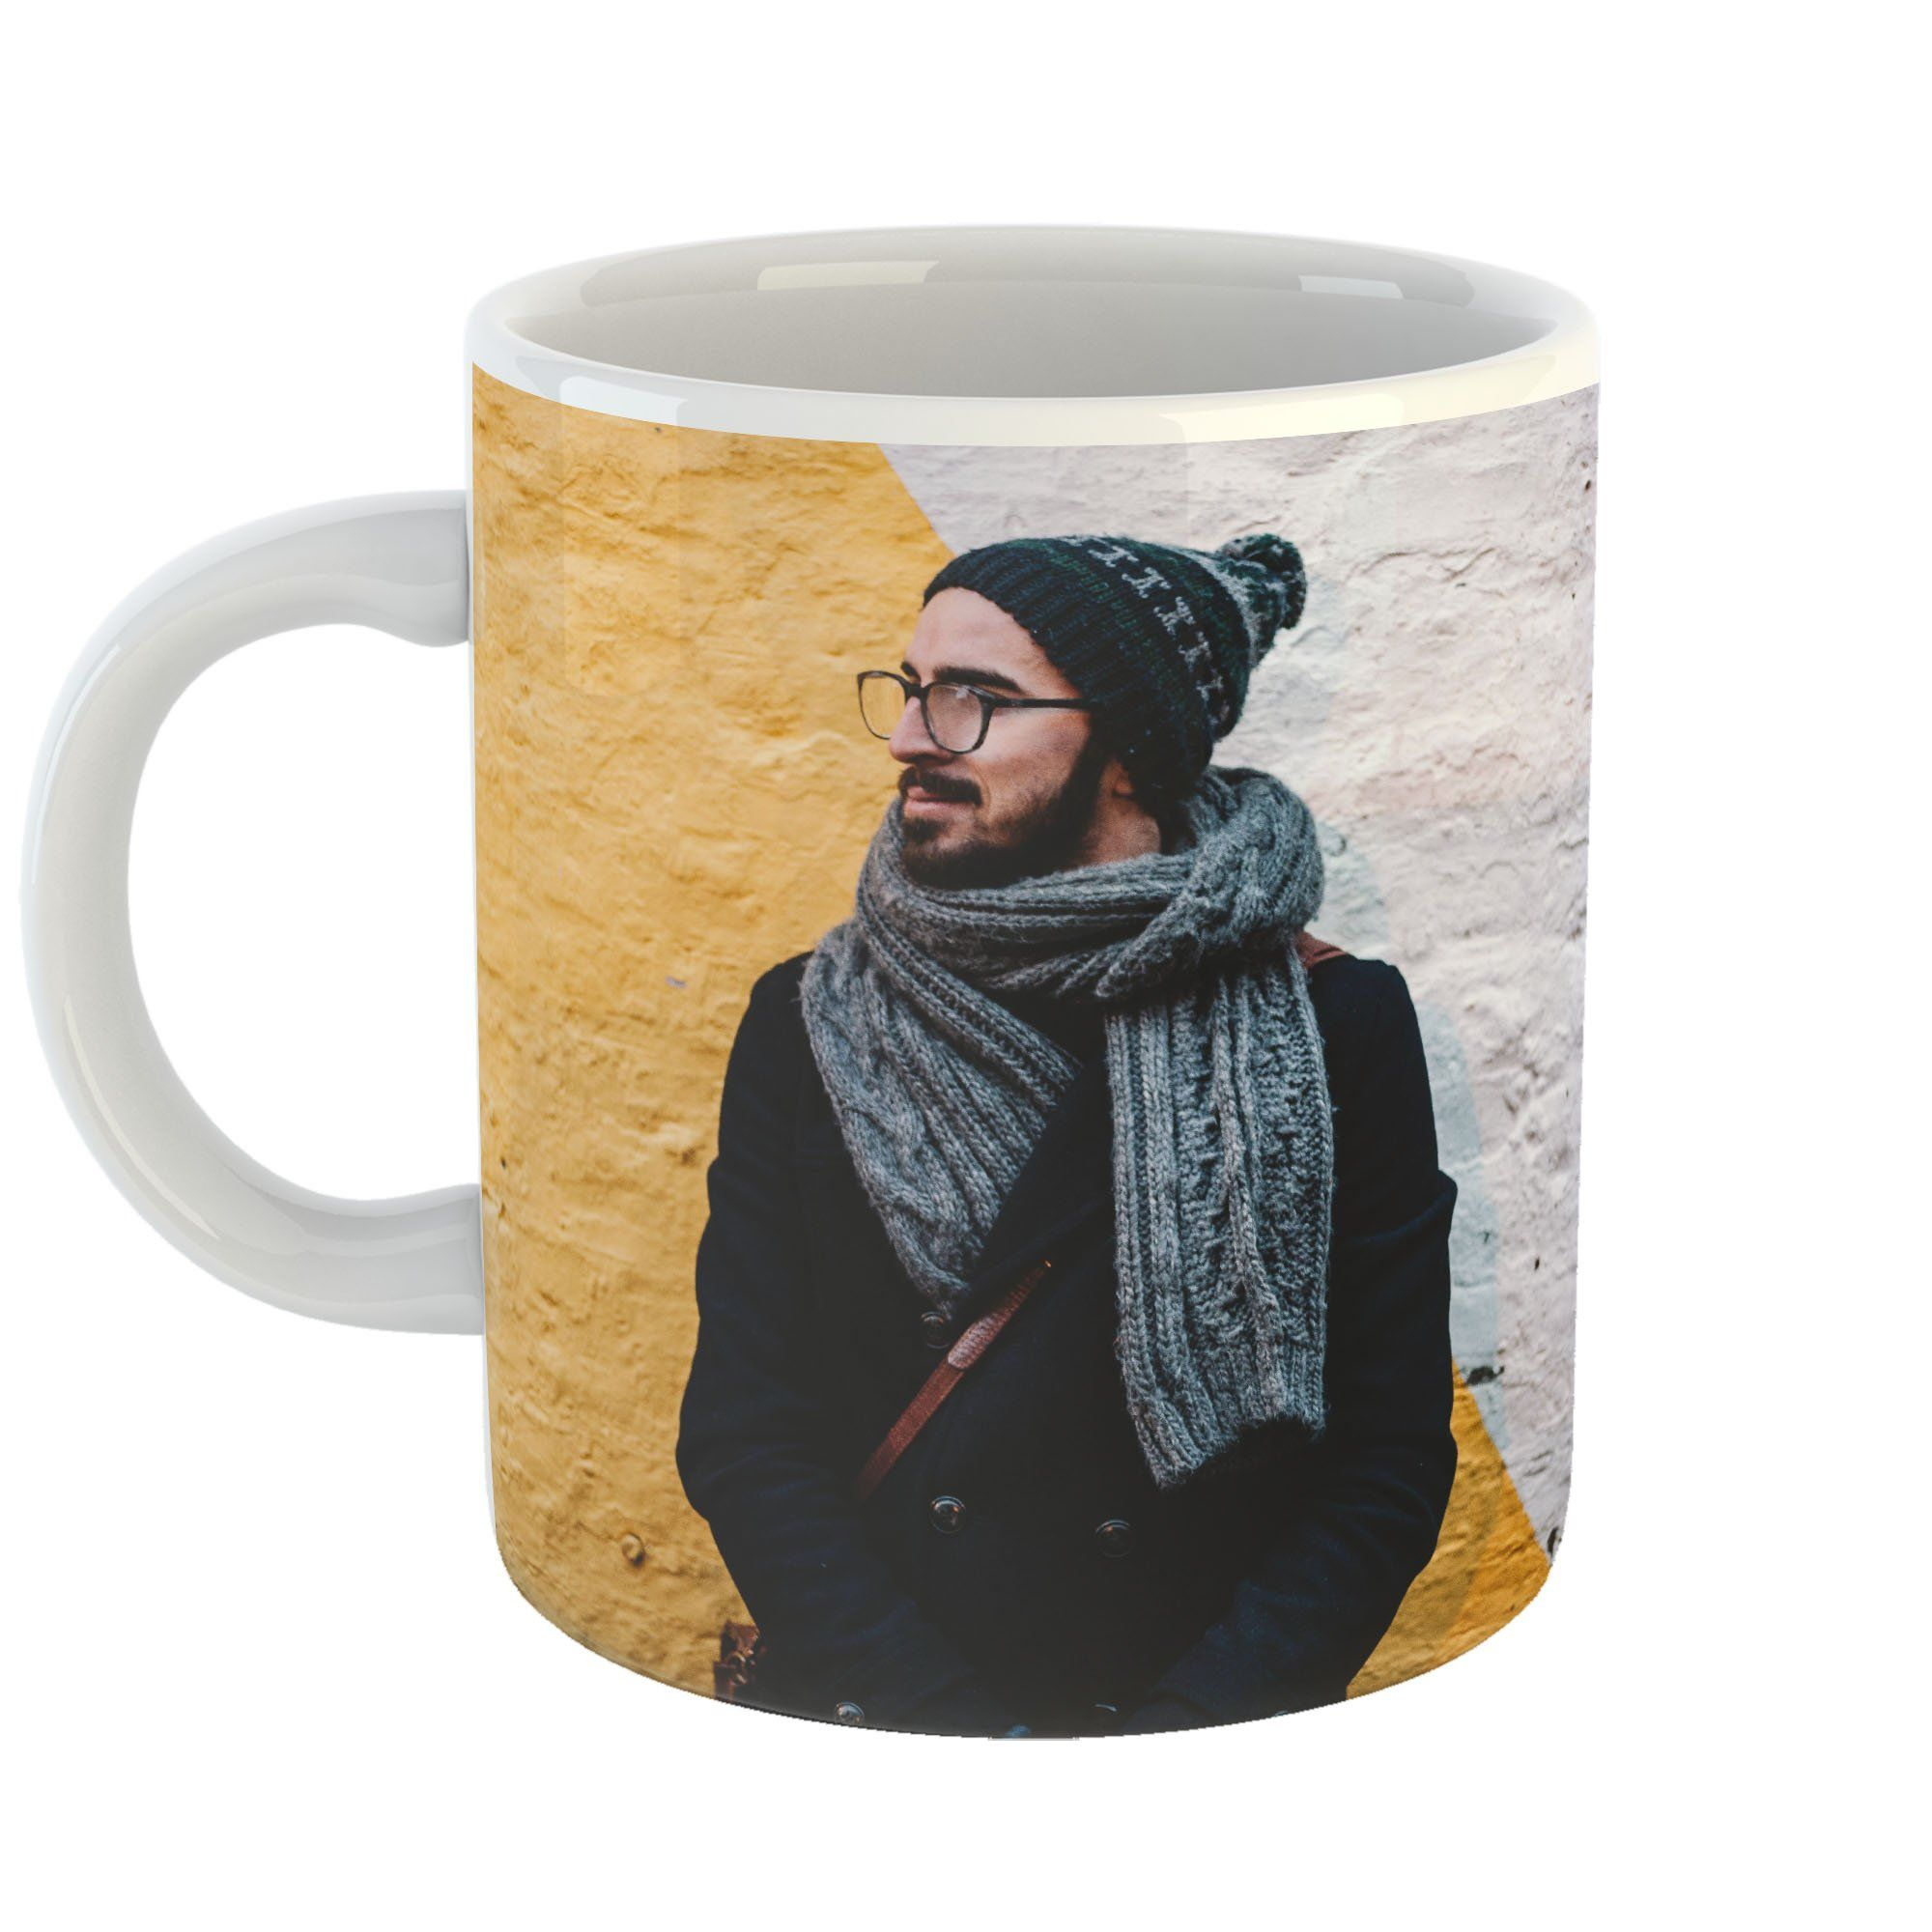 Westlake Art Coffee Cup Mug Scarf Headgear Modern Picture